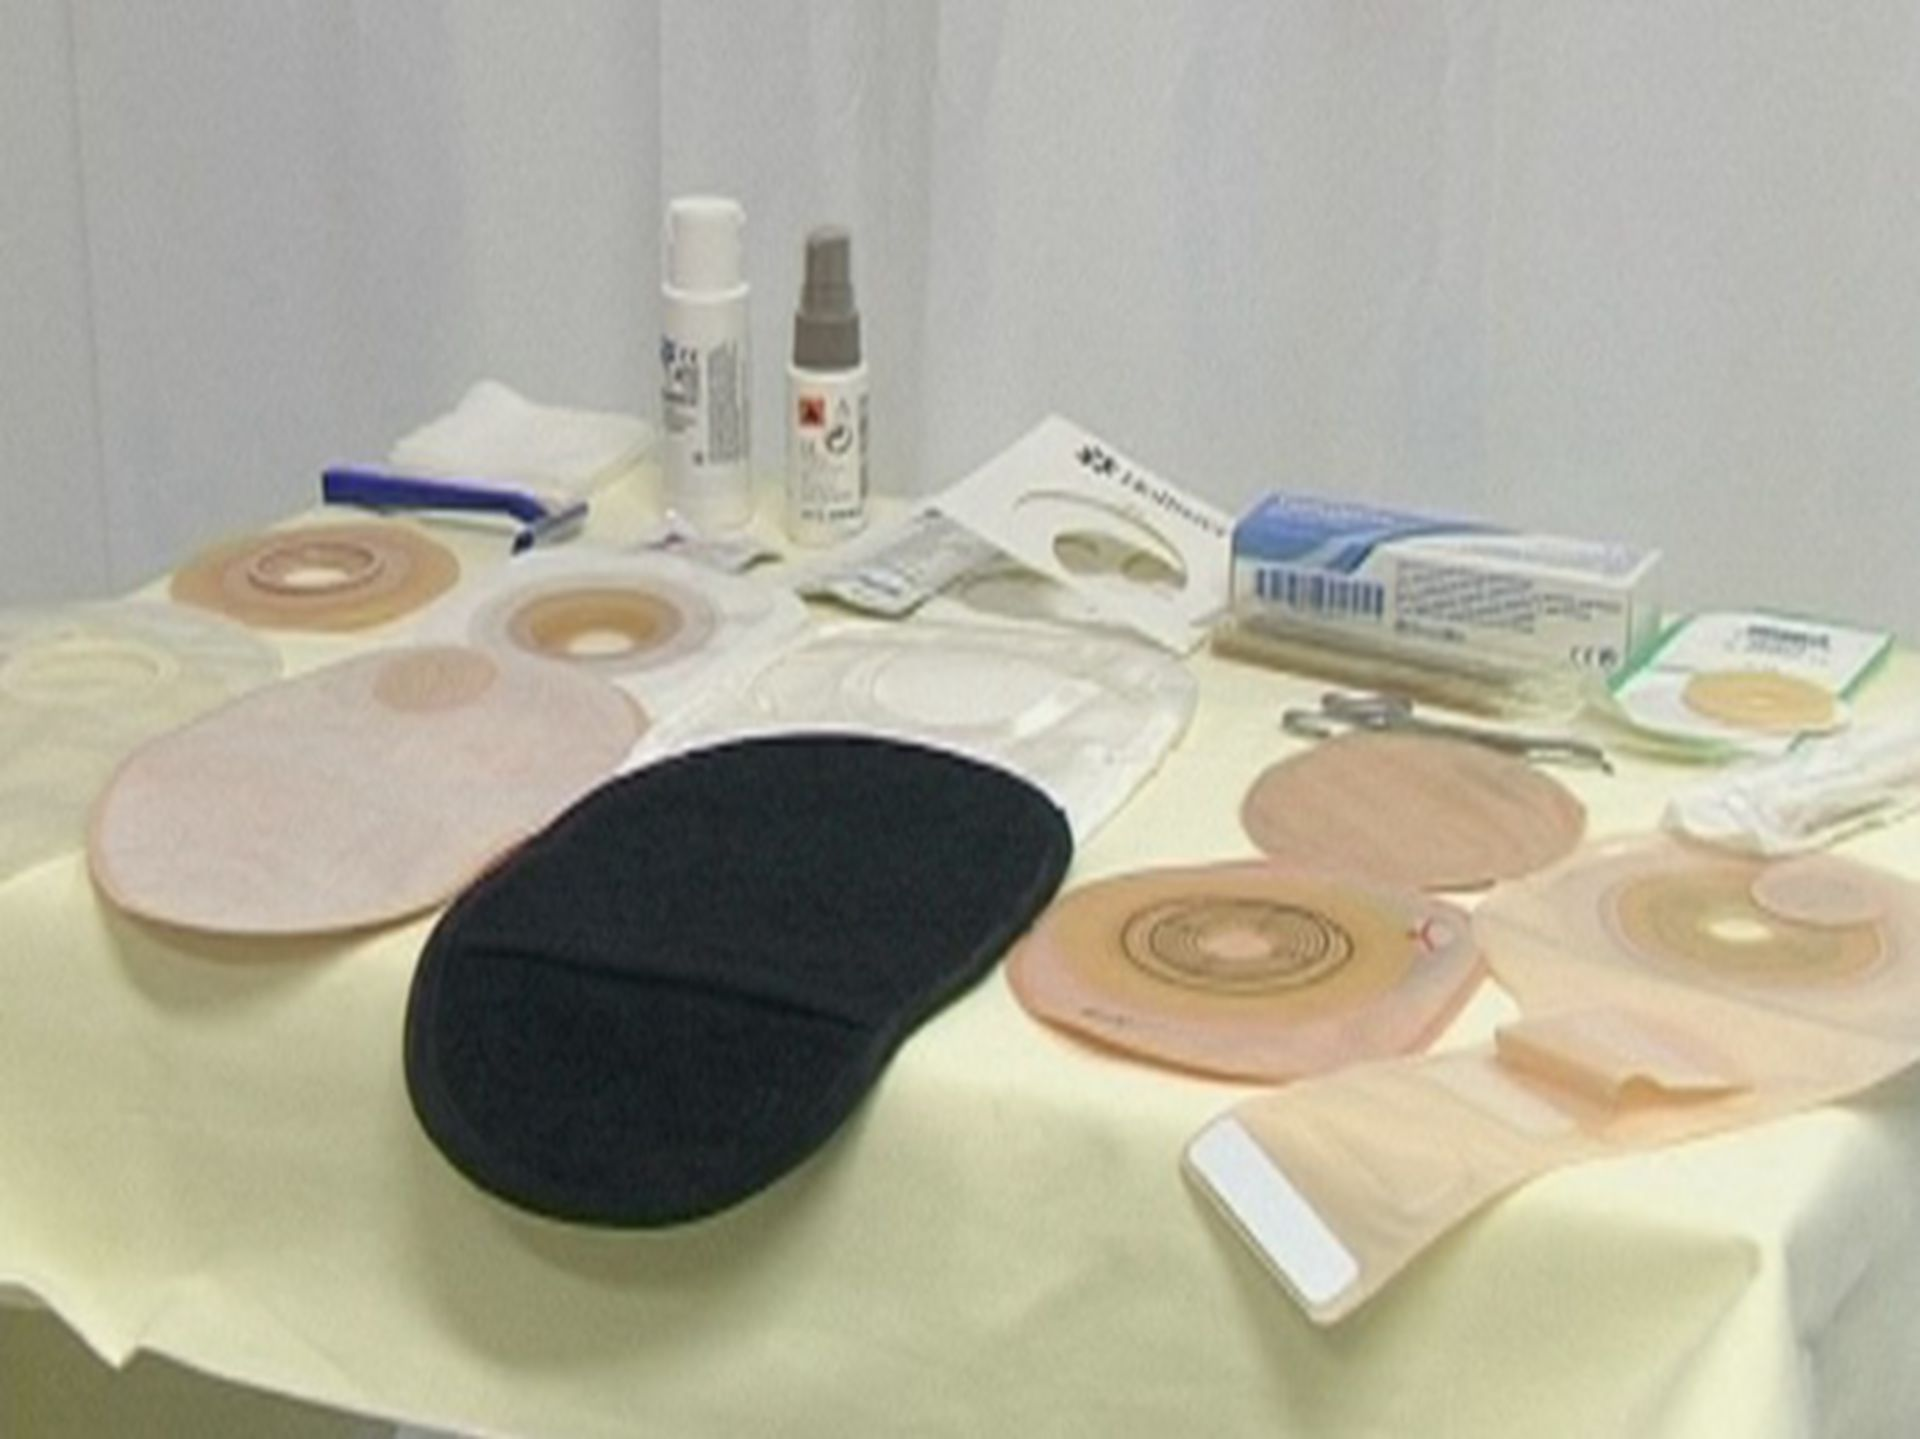 Materials for the provision of a stoma